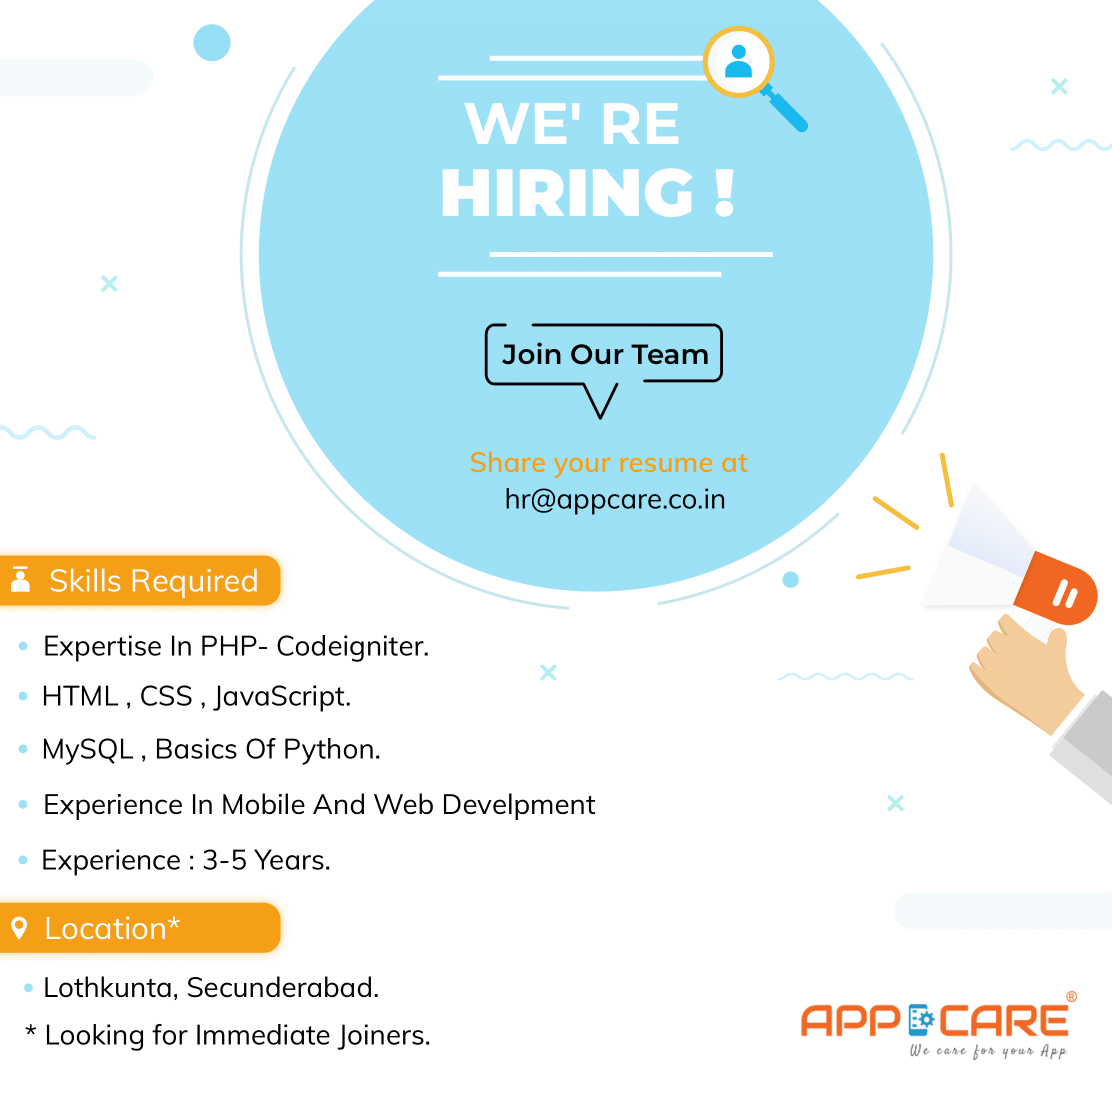 We are looking for the immediate joiners , Apply to Join our Appcare Team . #hiringdrive  #app #appdevelopment #appdeveloper  #appdevelpmentcompany #android #androiddevelopment  #androiddeveloper #iosdevelopment #appdevelopmentcompany #iosdeveloper #webdesign #webdevelopmentpic.twitter.com/zTRRQppMYp